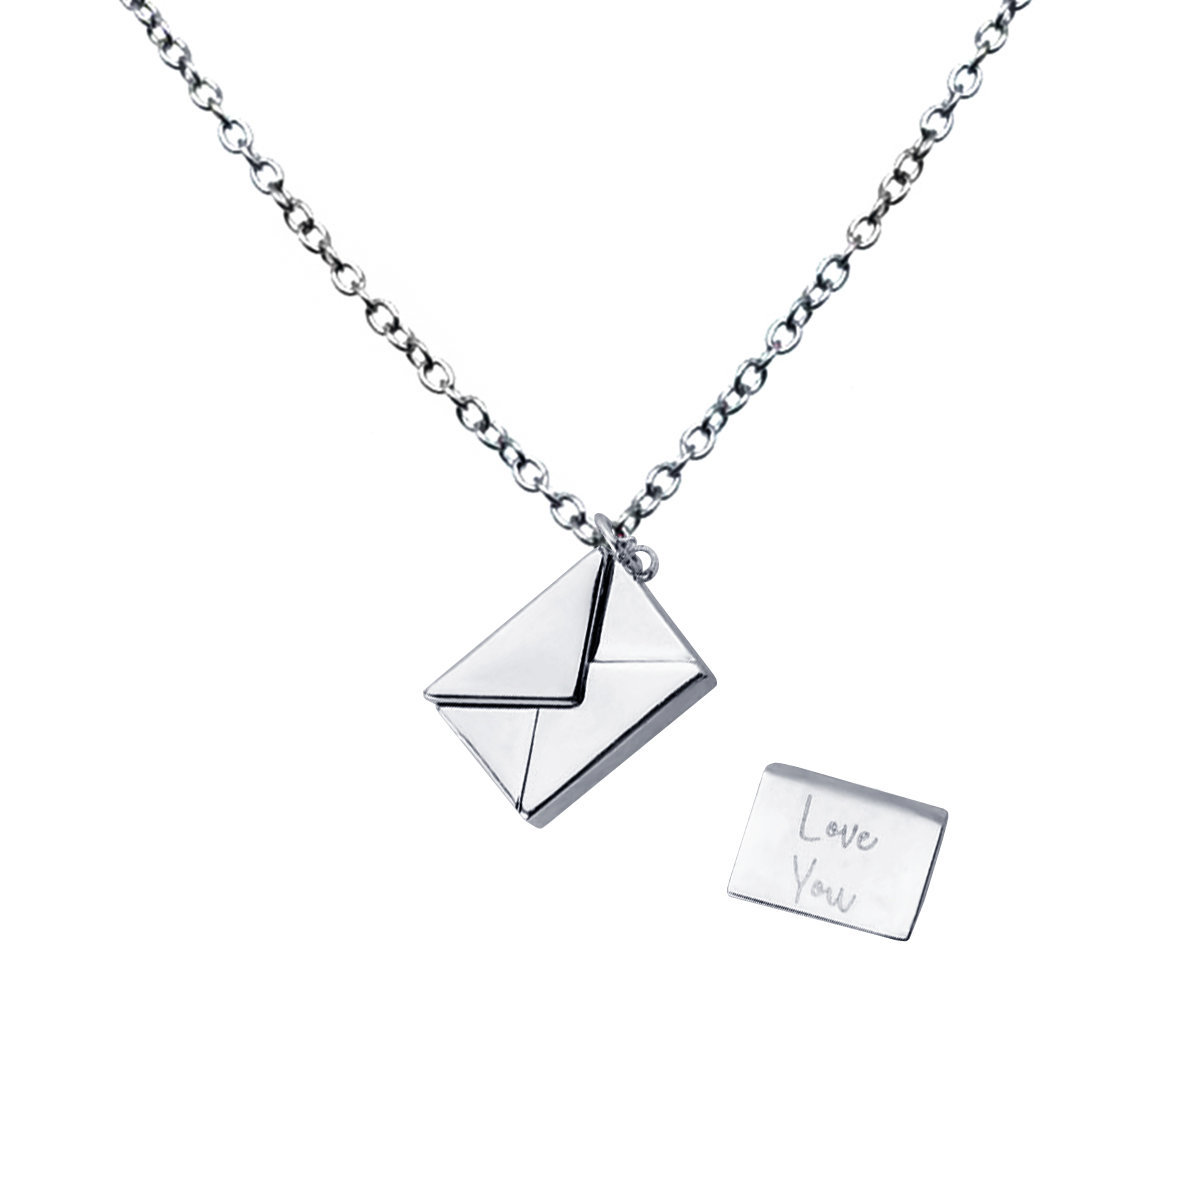 Deliver Love- 925 Silver Letter with envelope pendant with chain